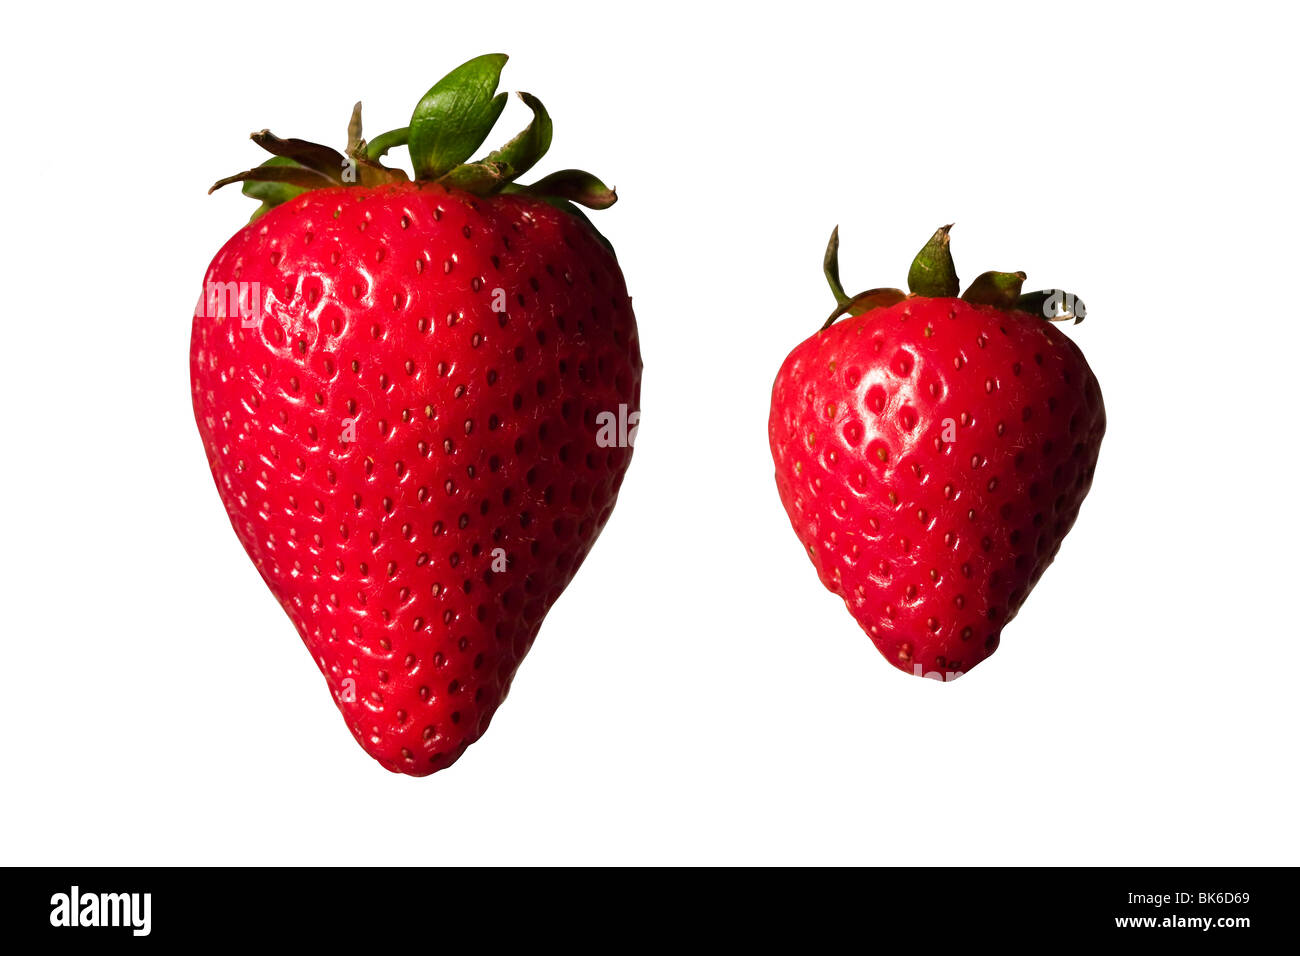 Big And Small Stock Photos & Big And Small Stock Images - Alamy